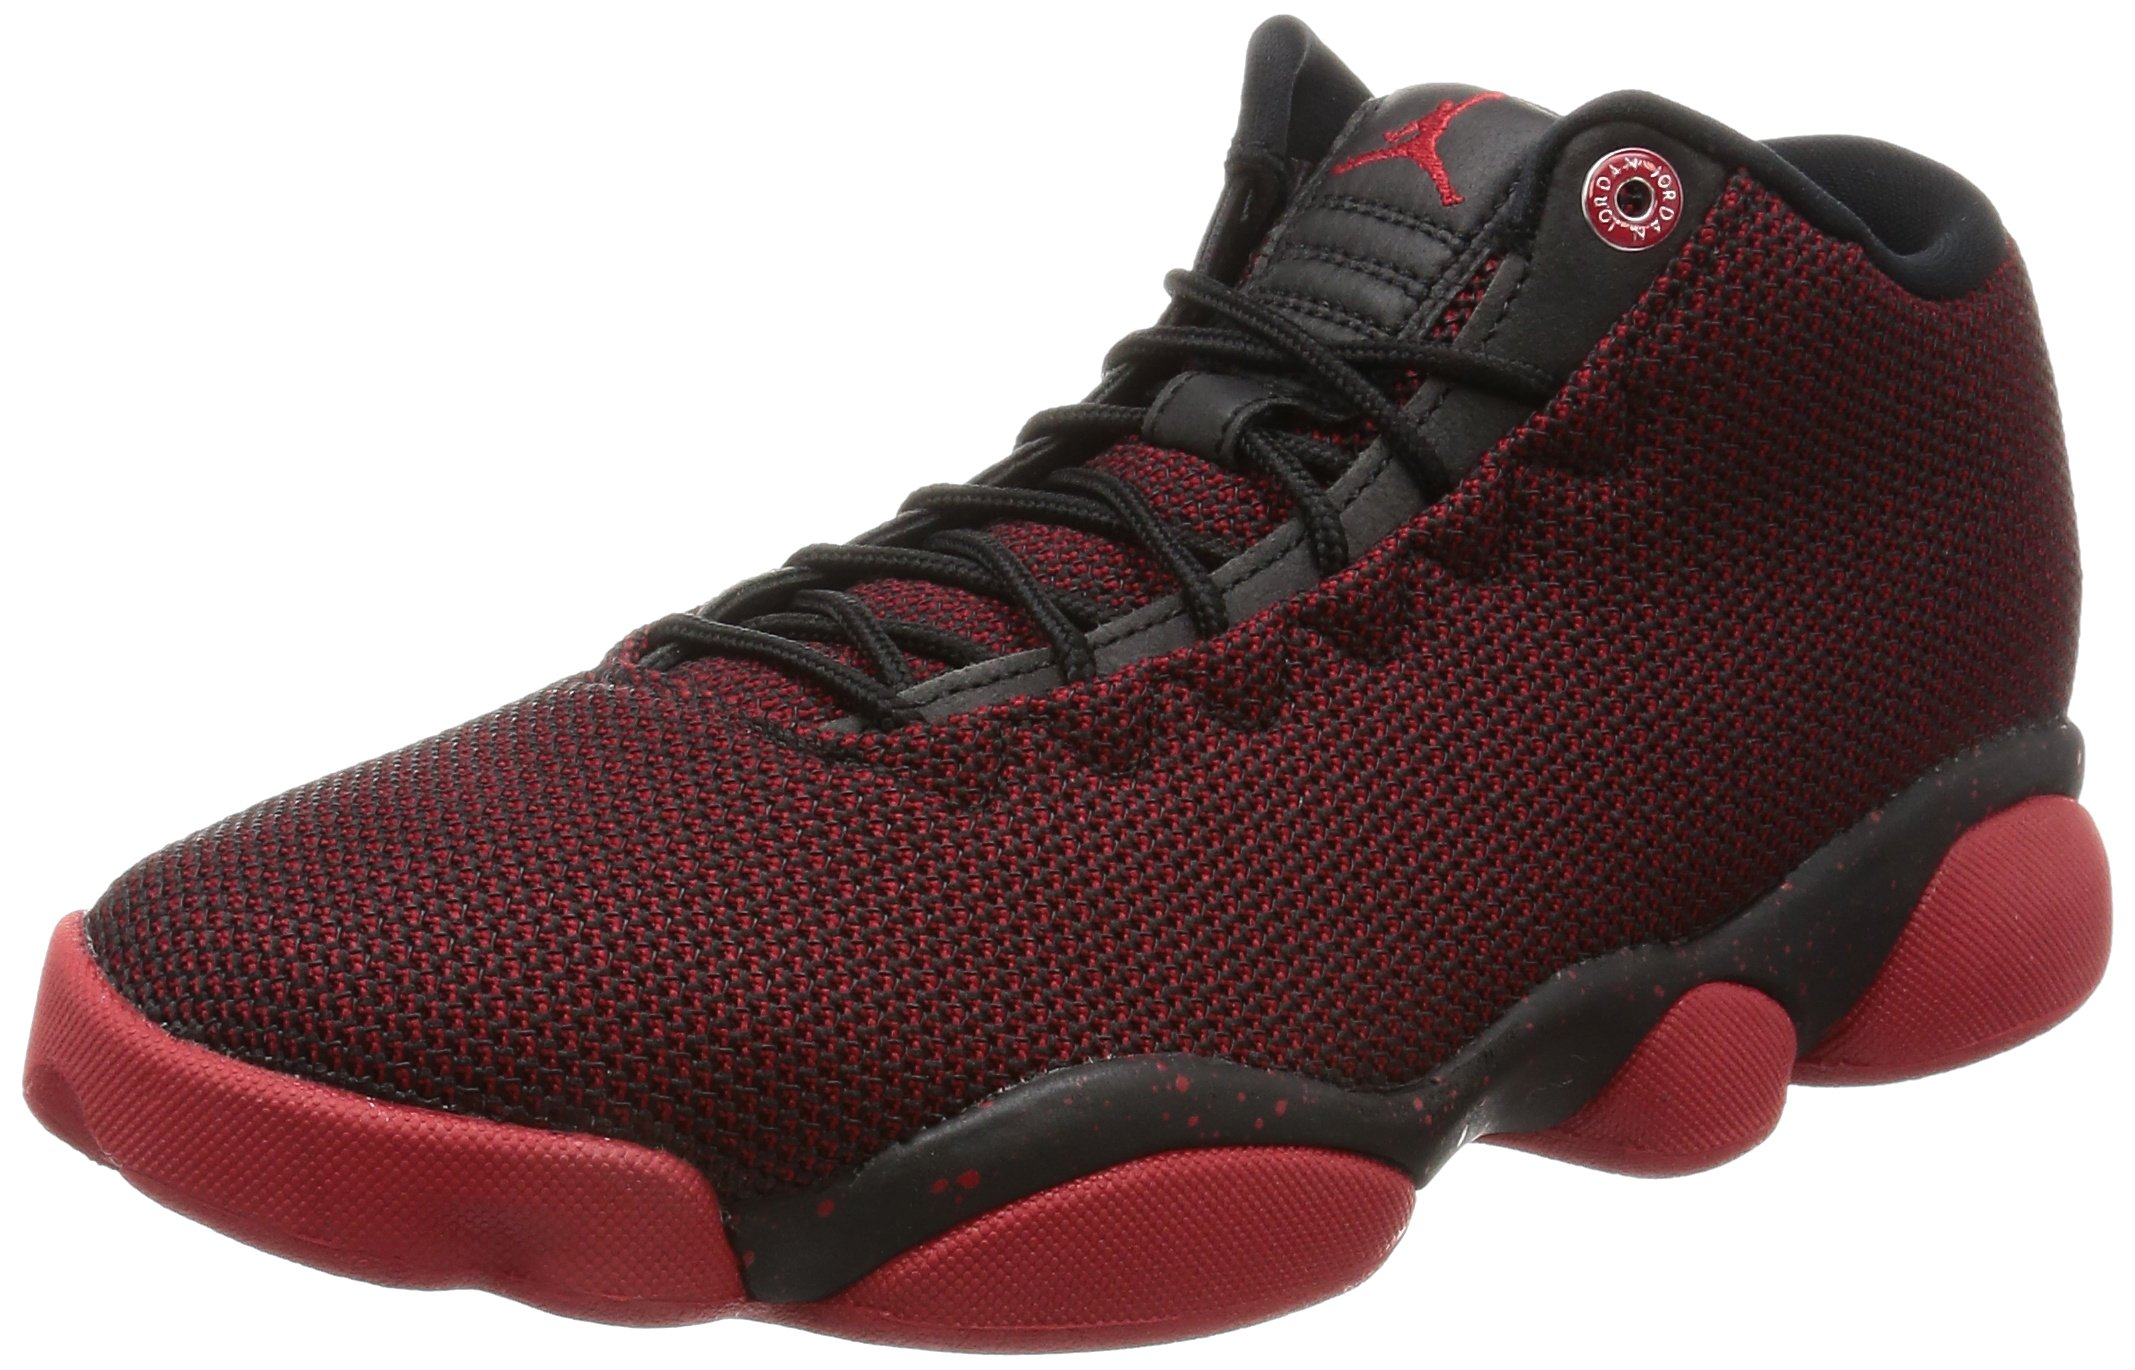 finest selection b46ff add1e Galleon - Jordan Mens Horizon Low Basketball Athletic Shoes 12D M US (Night  Maroon White  Gym Red)